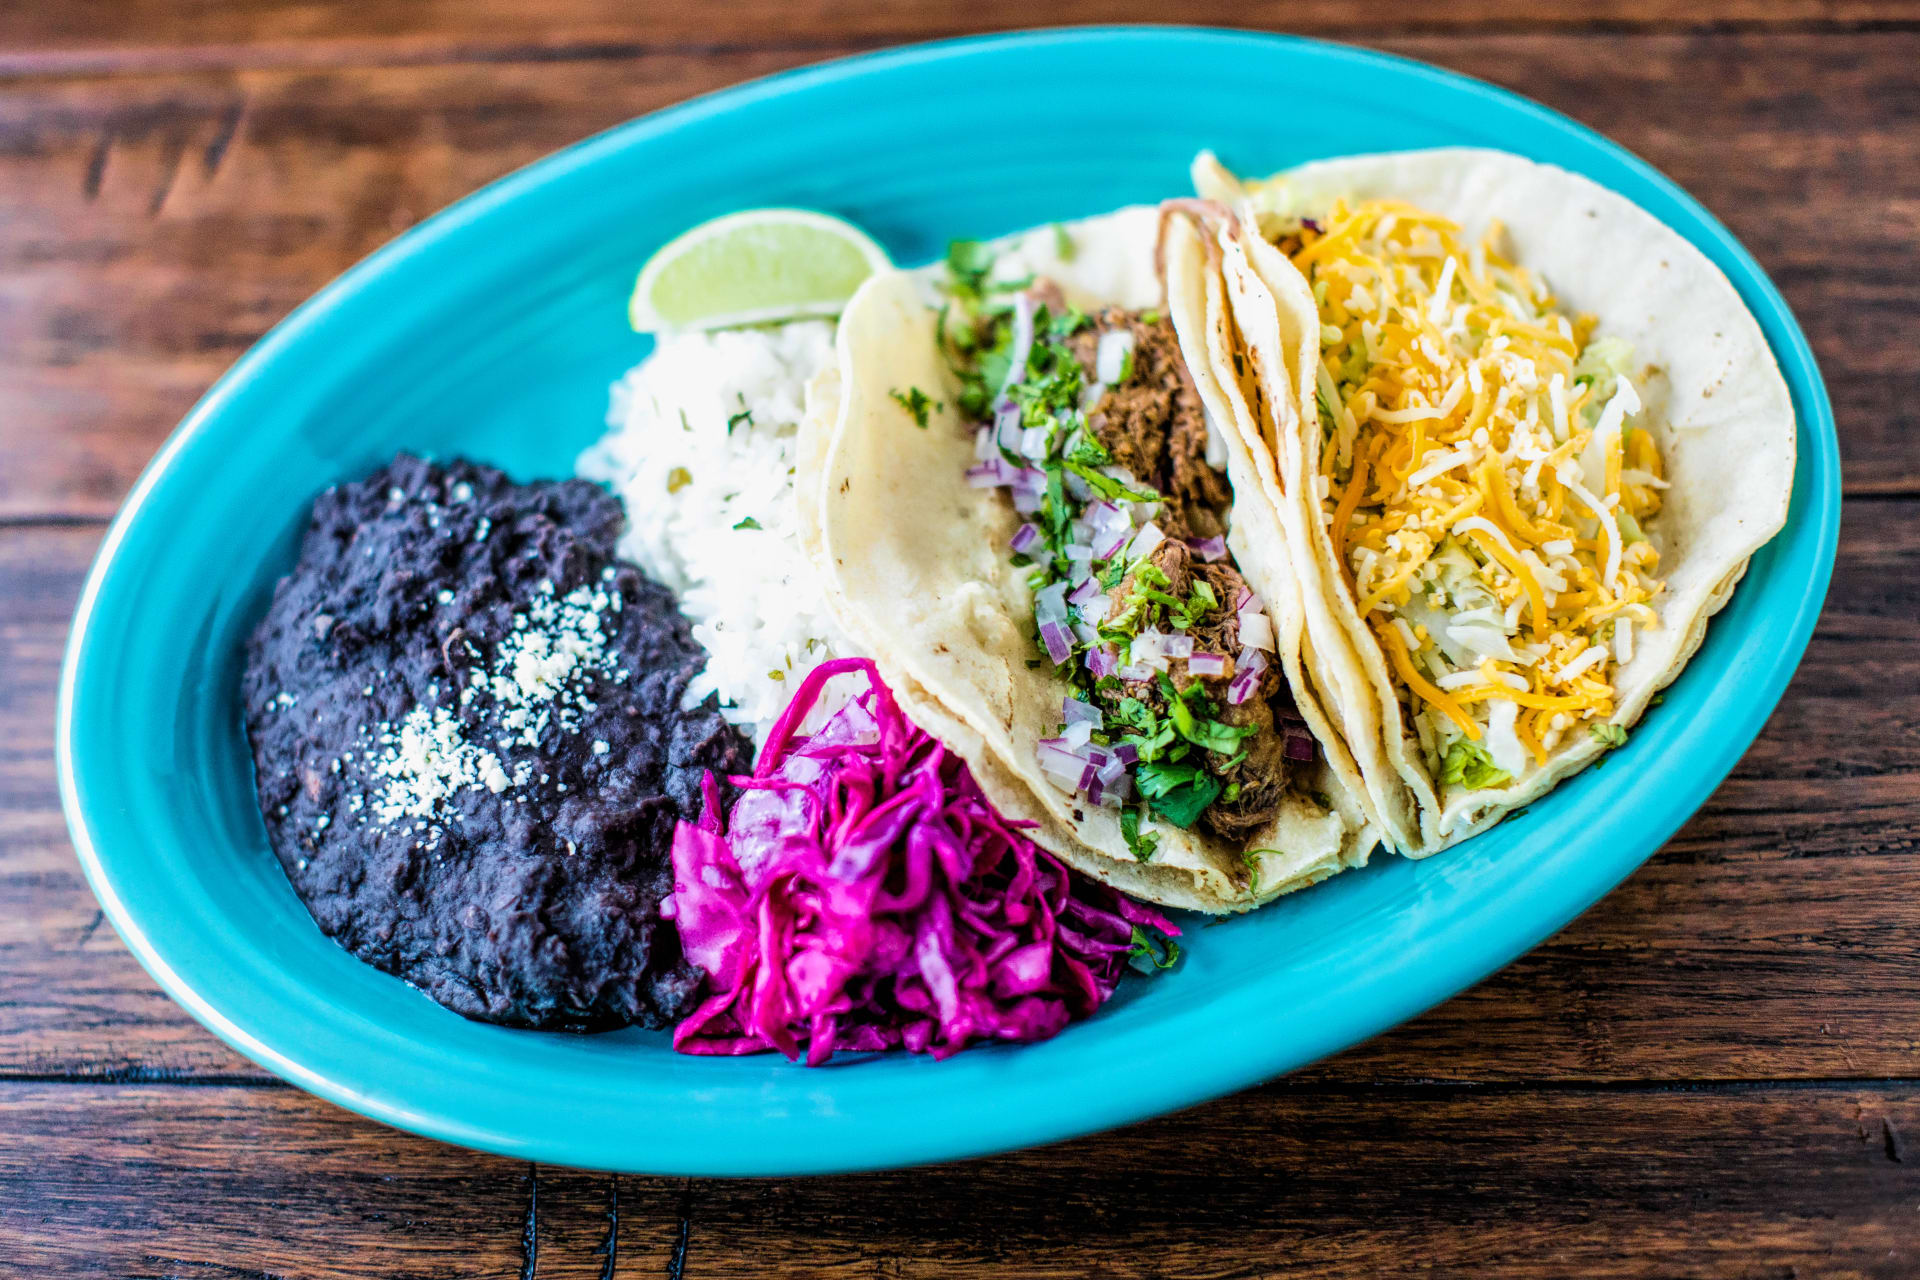 DAILY LUNCH SPECIAL 2 TACOS, RICE & BEANS